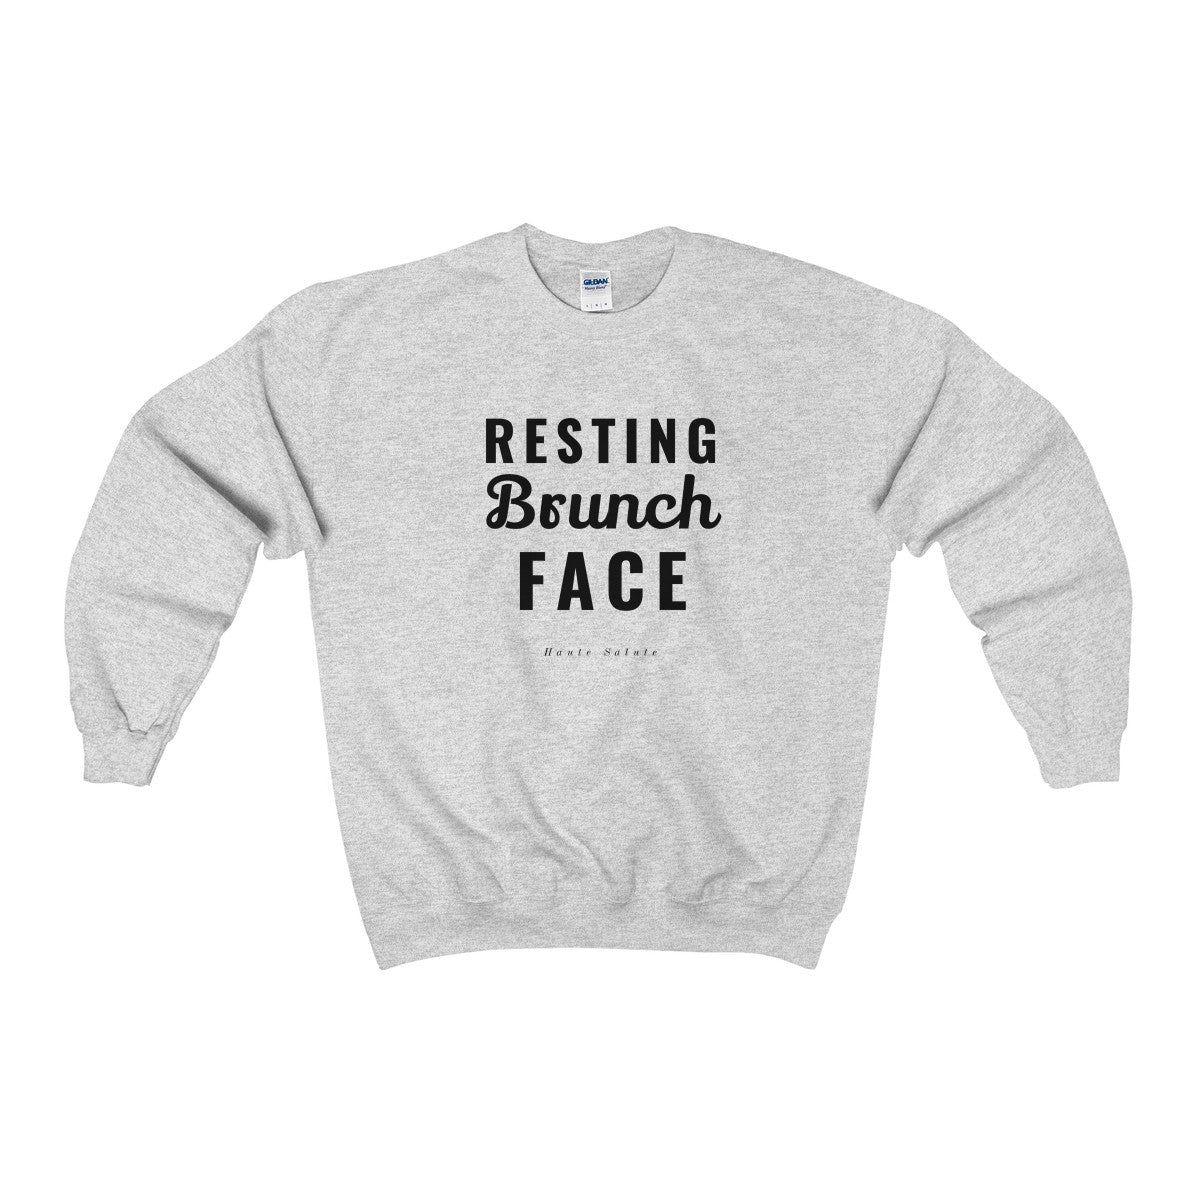 Resting Brunch Face Crewneck